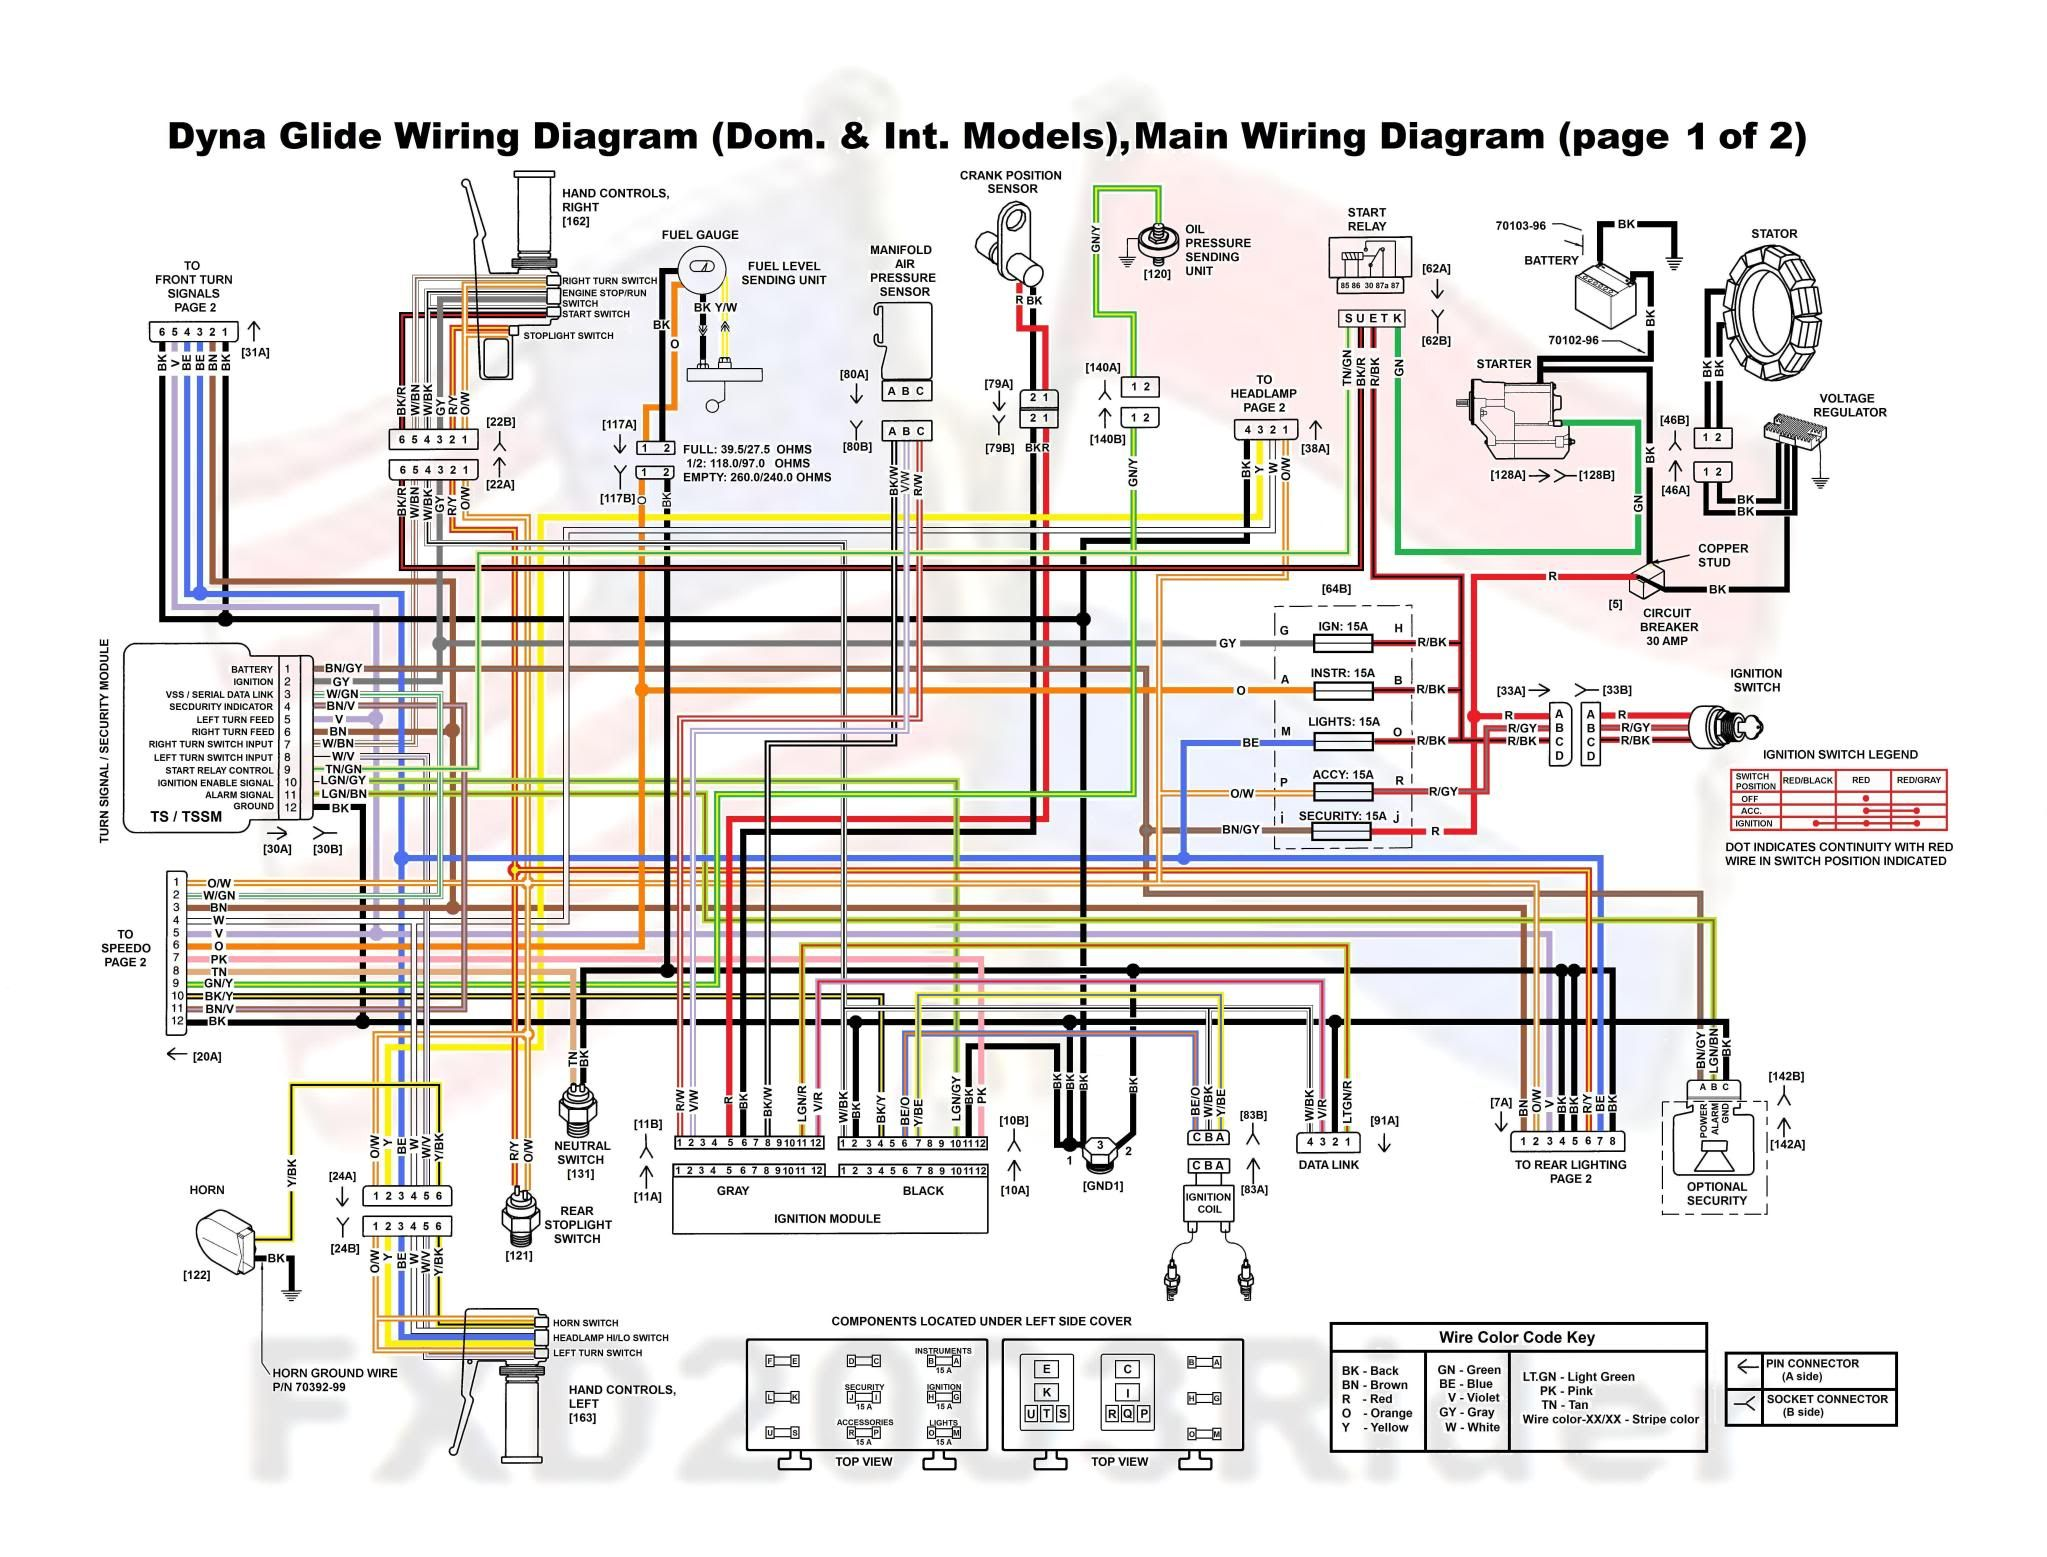 DIAGRAM] 07 Harley Davidson Radio Wiring Diagram FULL Version HD Quality Wiring  Diagram - 158914.ACCNET.FRJaguar Fog Lights Wiring Diagram - accnet.fr